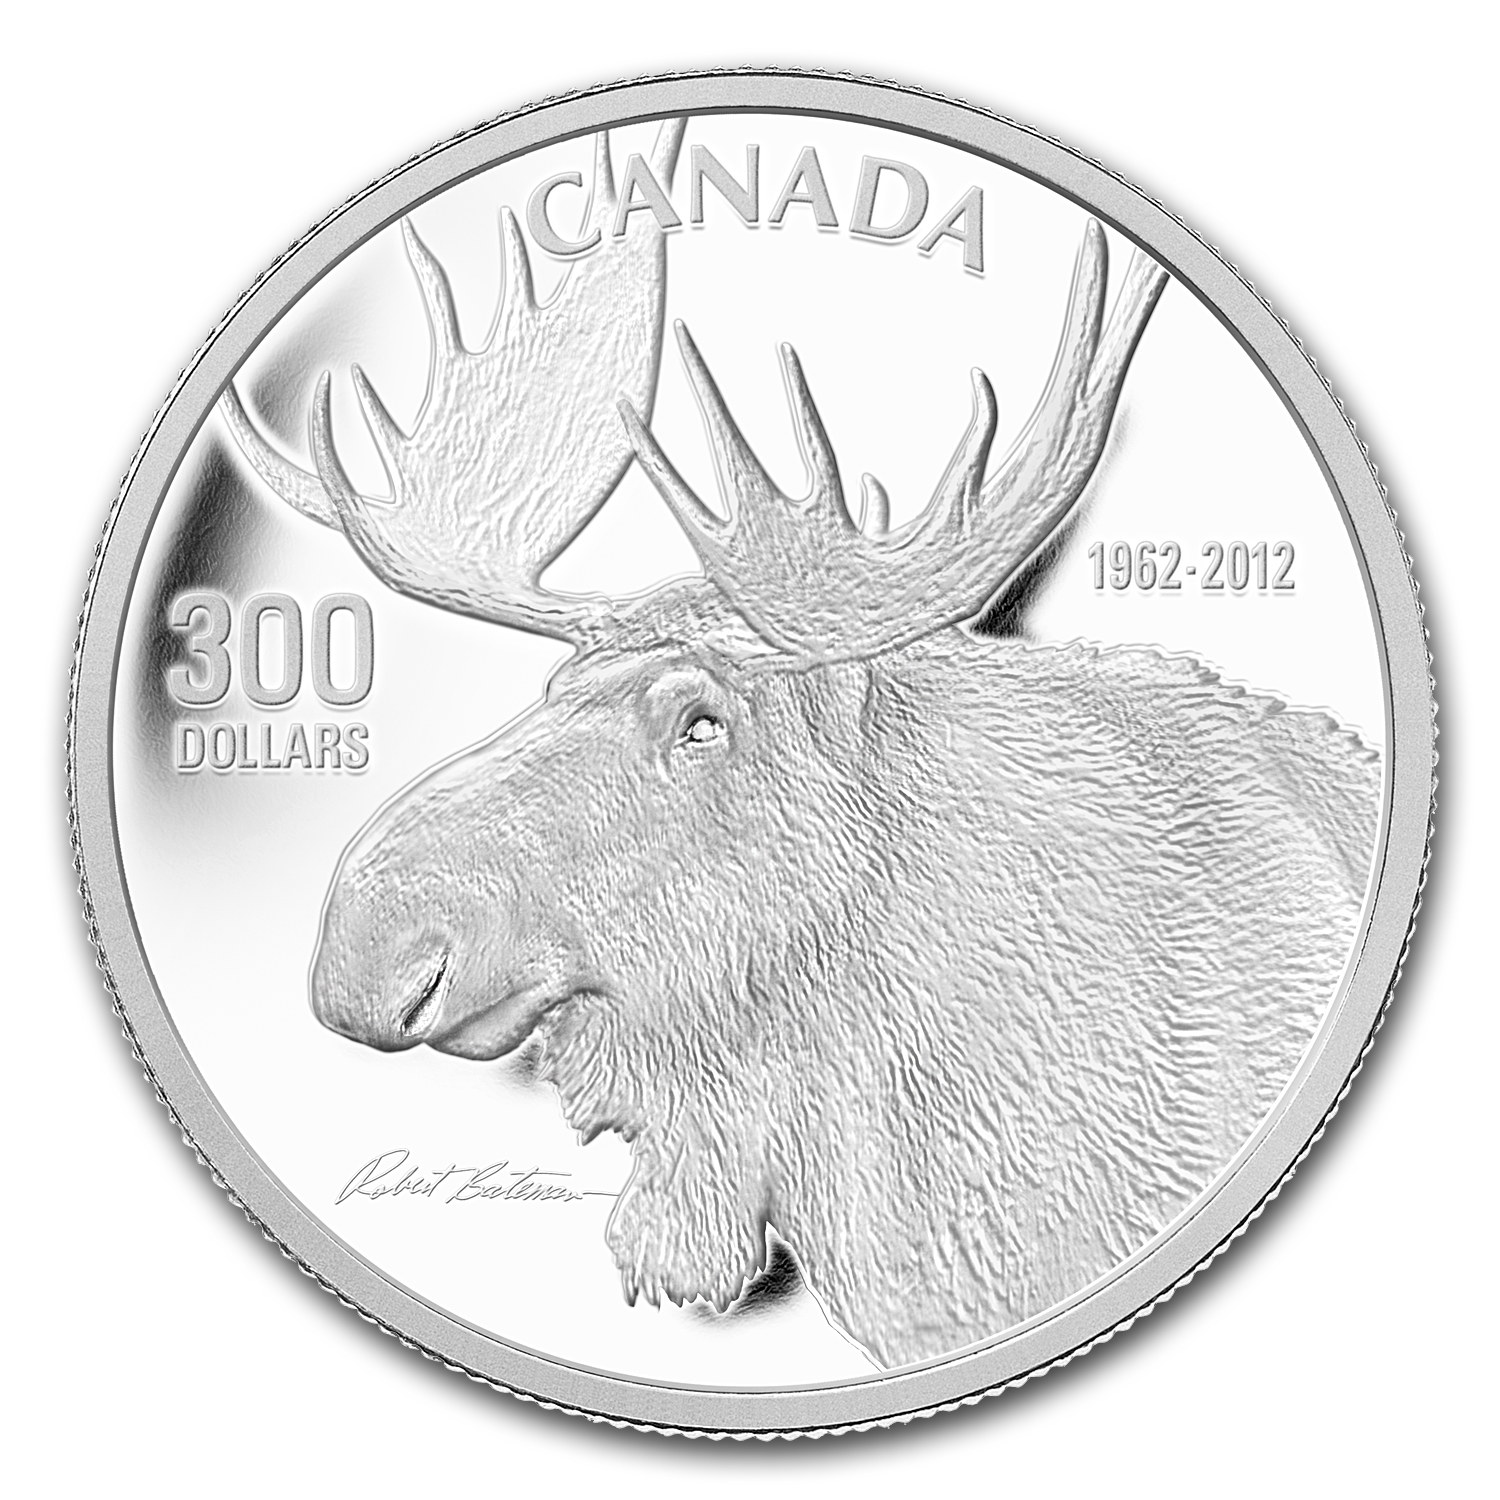 2012 1 oz Proof Platinum Canadian $300 Bateman's The Bull Moose